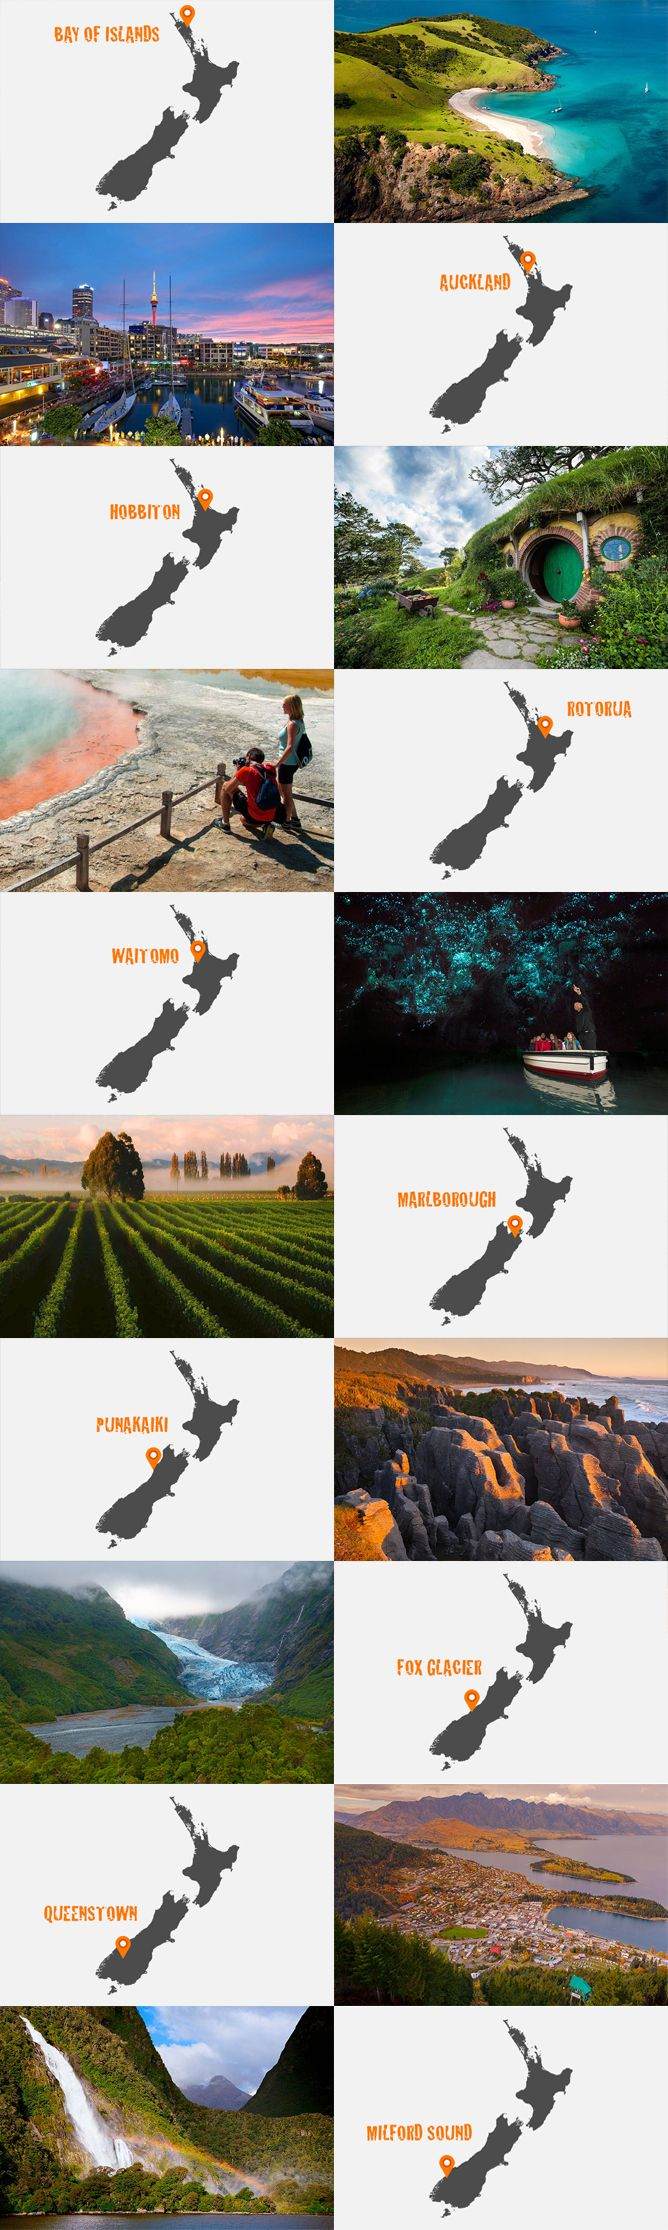 Top 10 Best Places To Visit In New Zealand - http://www.newzealandbyroad.com/top-10-best-places-to-visit-in-new-zealand/